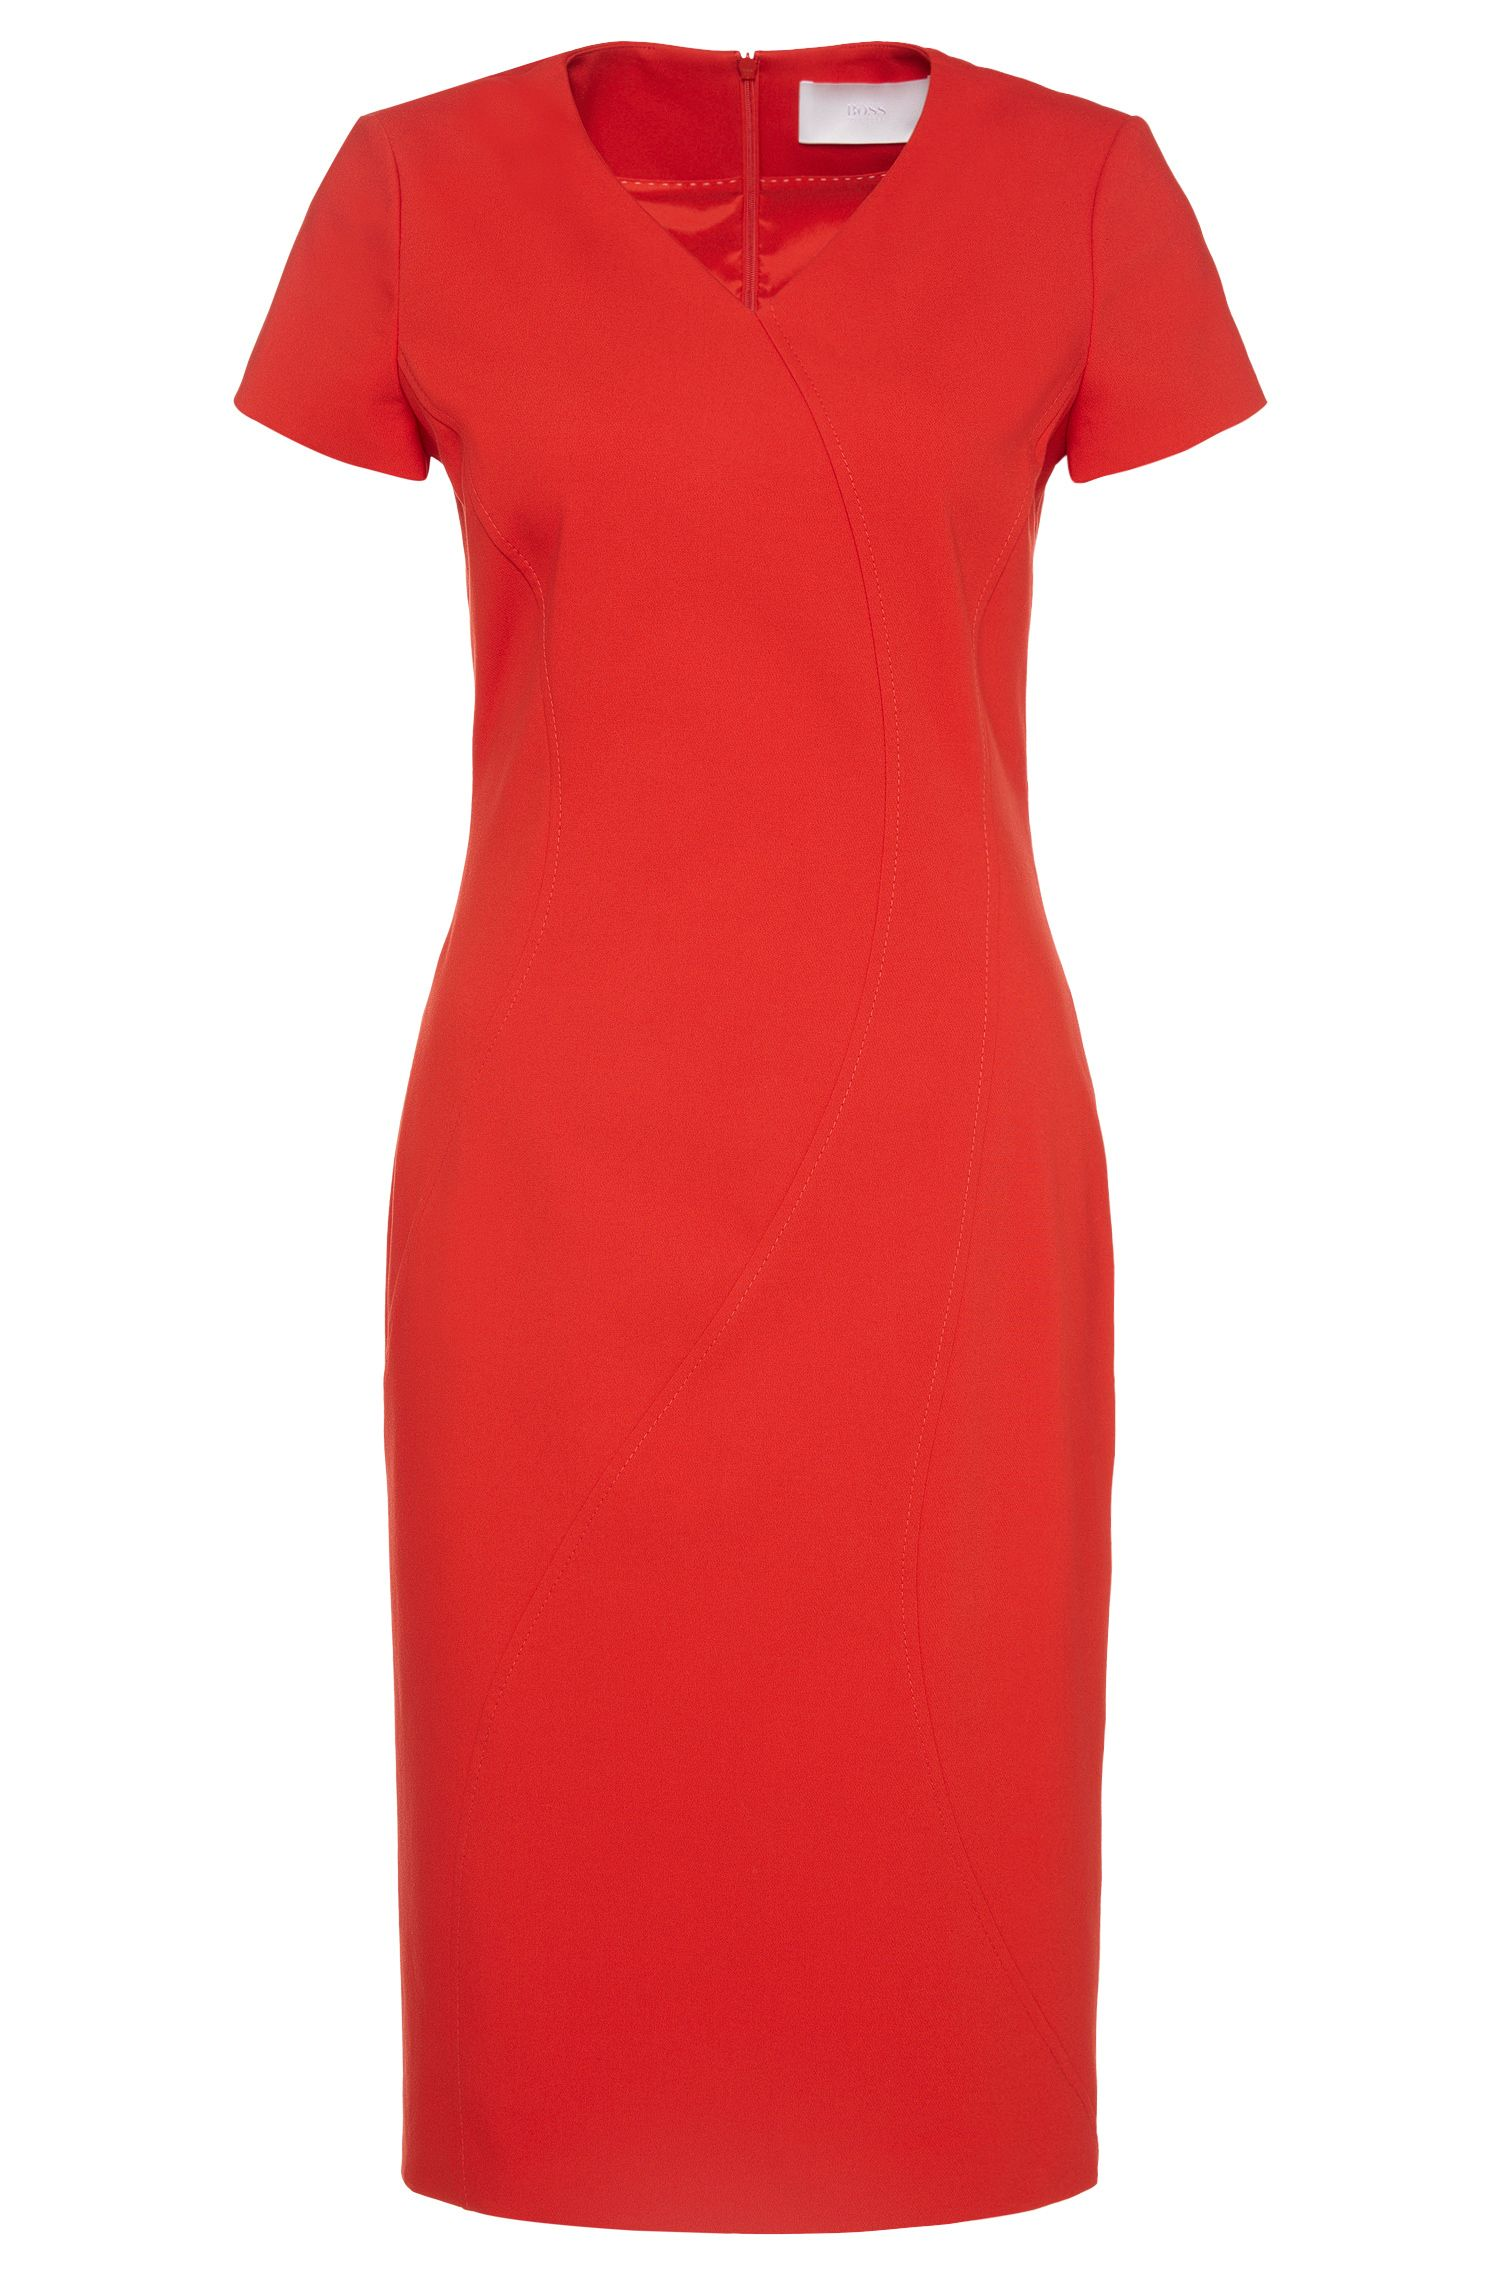 'Dydali' | Stretch Cotton Blend Sheath Dress